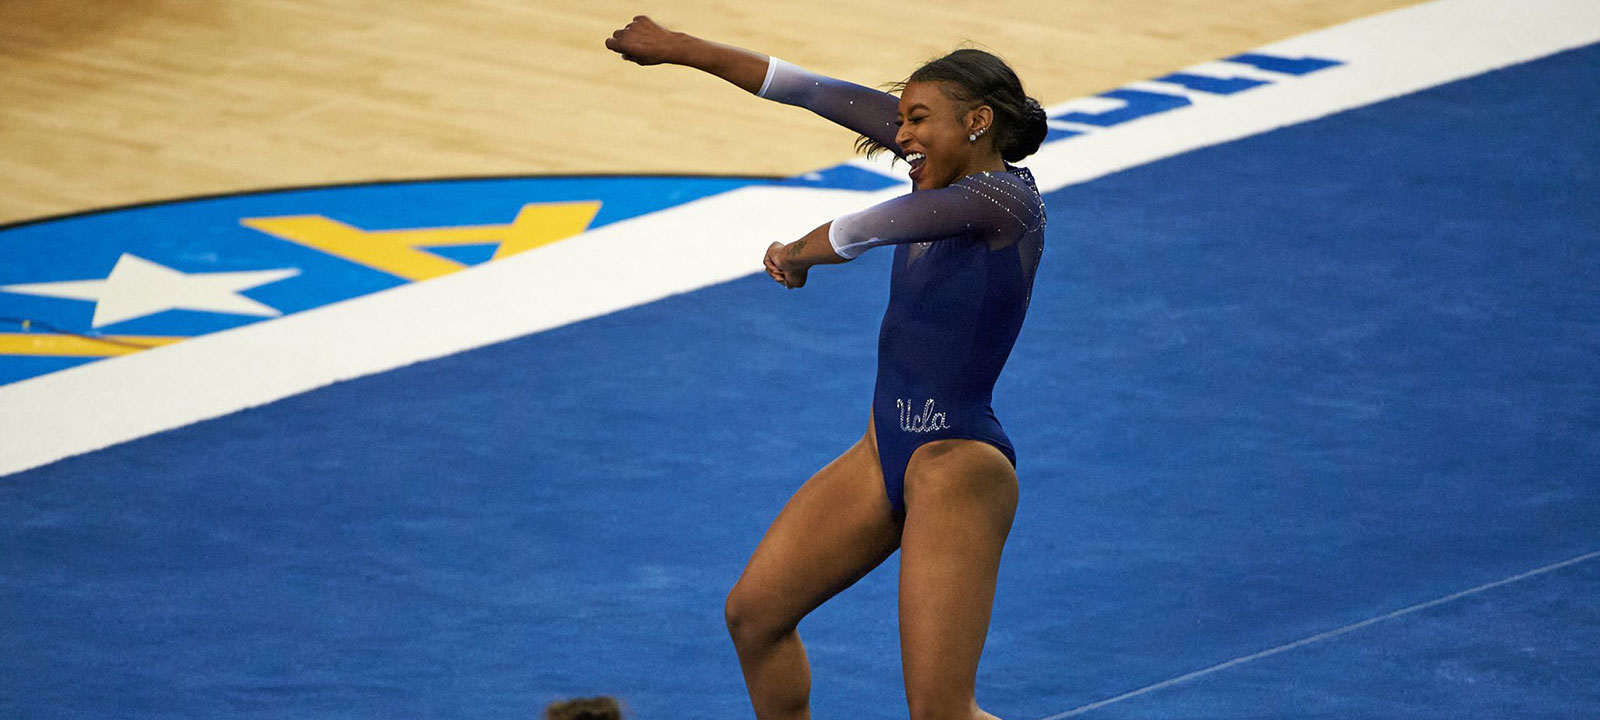 Nia Dennis smiling and pumping her fist while on the floor